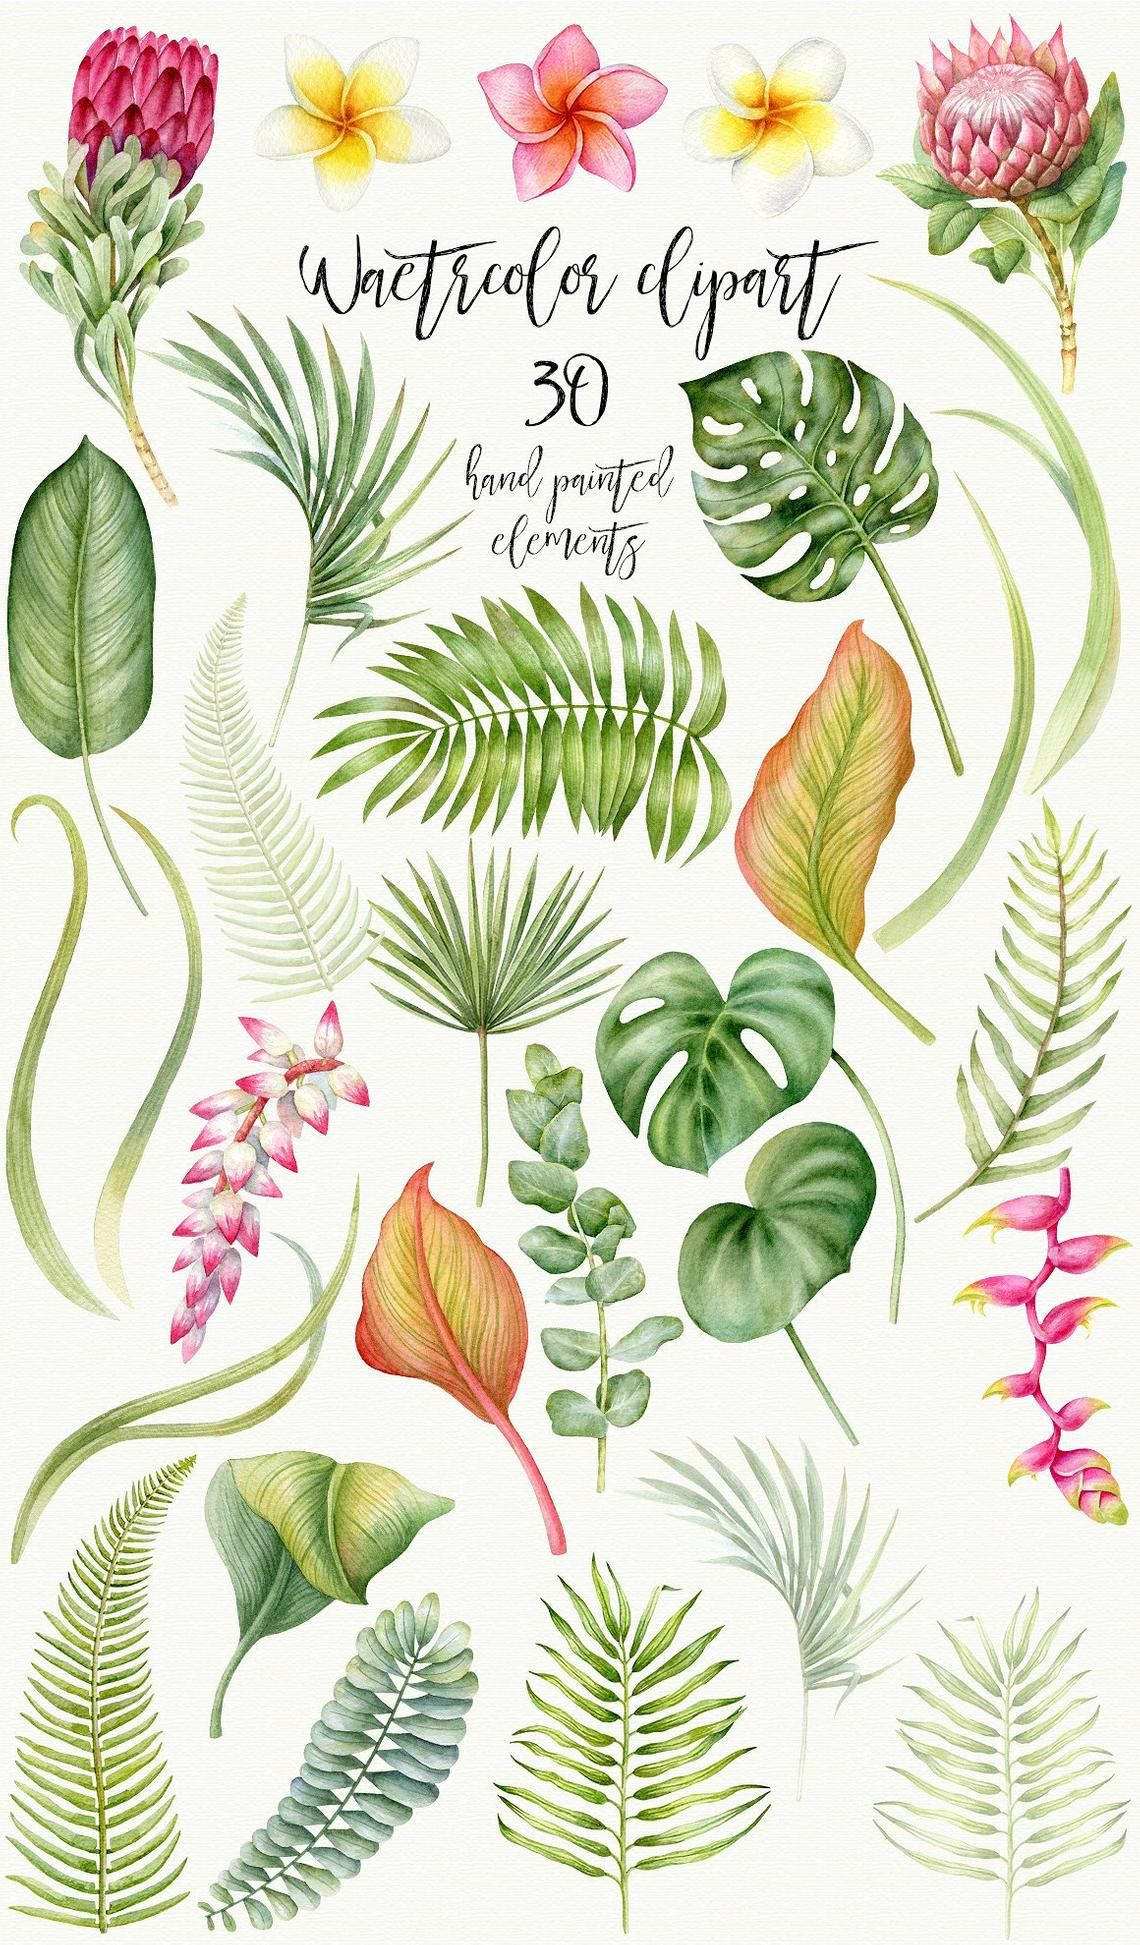 Watercolor Tropical Leaves Clip Art, Tropic, Protea, Palm.